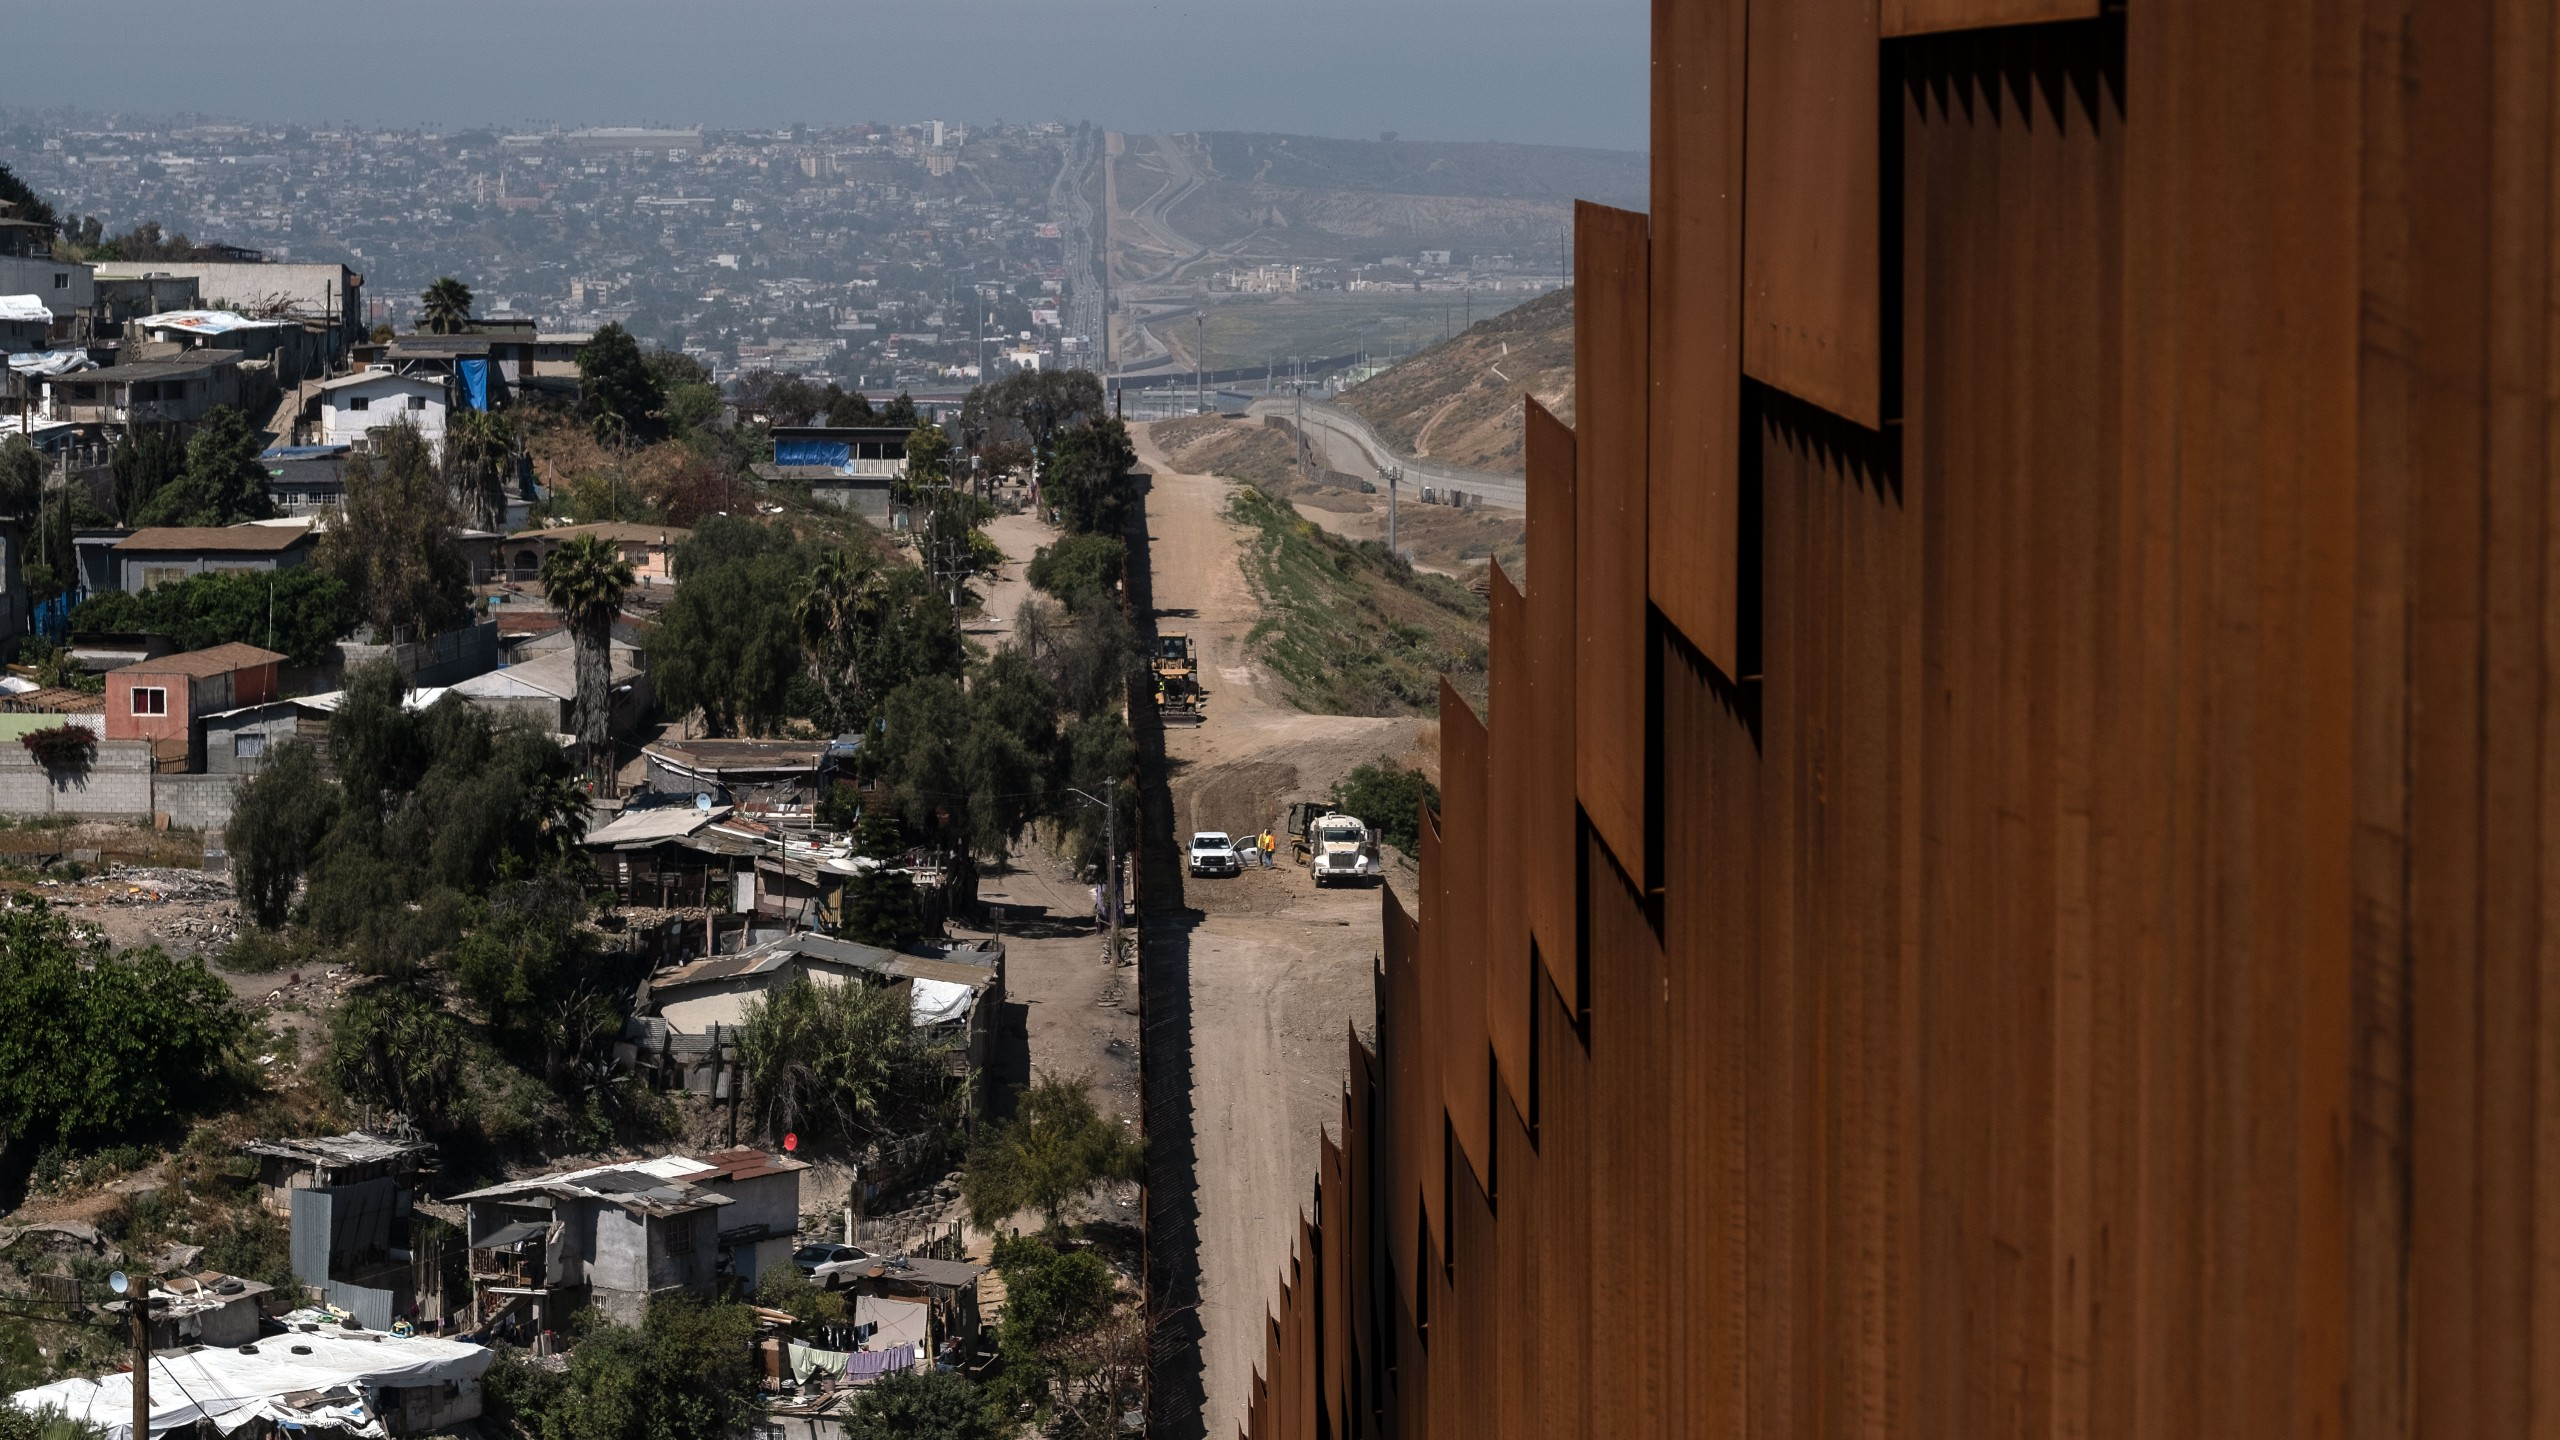 A construction crew (right) works on the US side of the US-Mexico border fence as seen from Tijuana, in Baja California state, Mexico, on April 24, 2019. (Credit: GUILLERMO ARIAS/AFP/Getty Images)